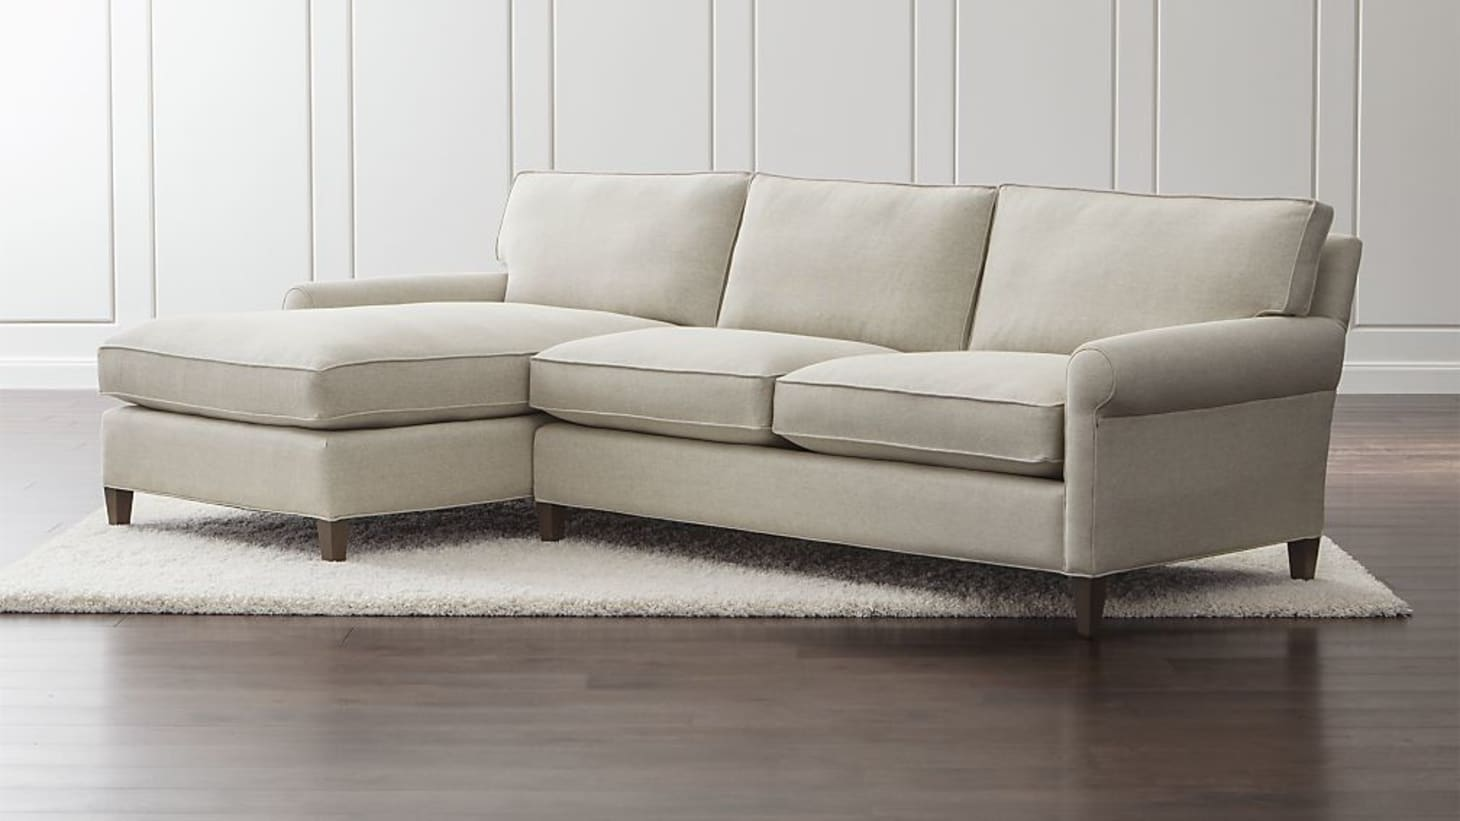 Expandable & Modular: Best Sectional Sofas   Apartment Therapy